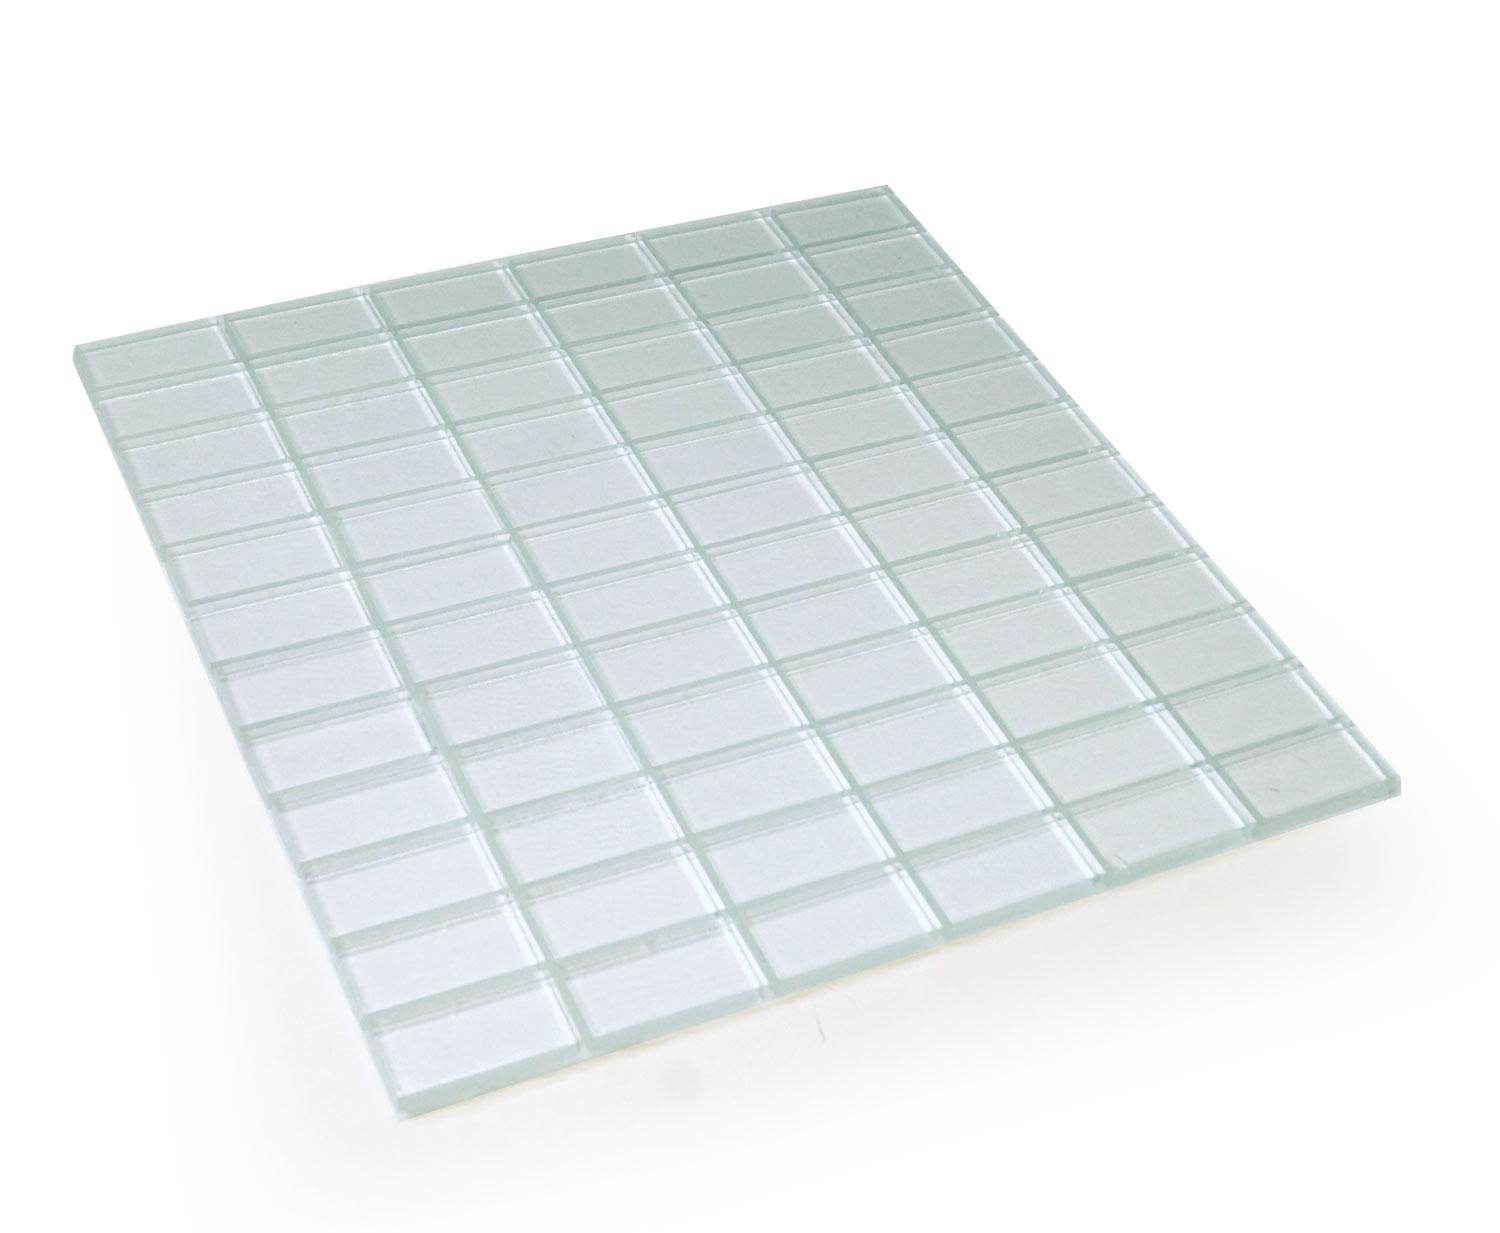 1 x 2 Clear Crafting Tiles - 72 Pieces